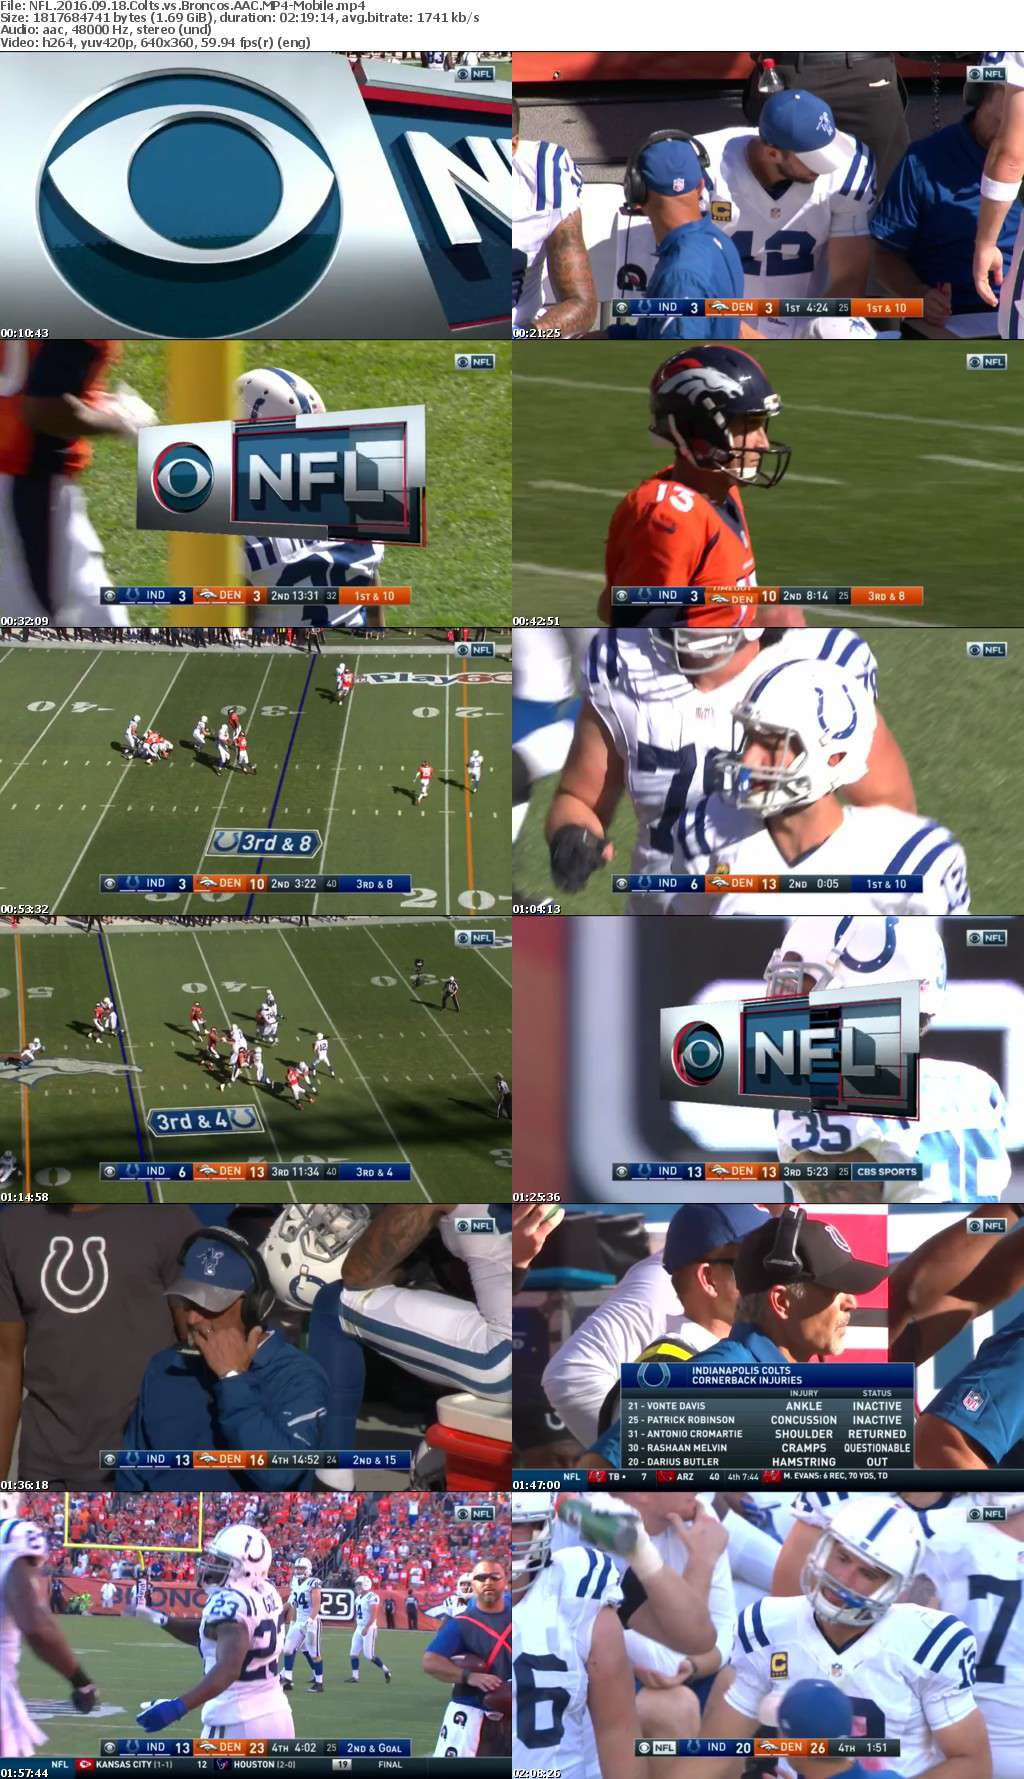 NFL 2016 09 18 Colts vs Broncos AAC-Mobile